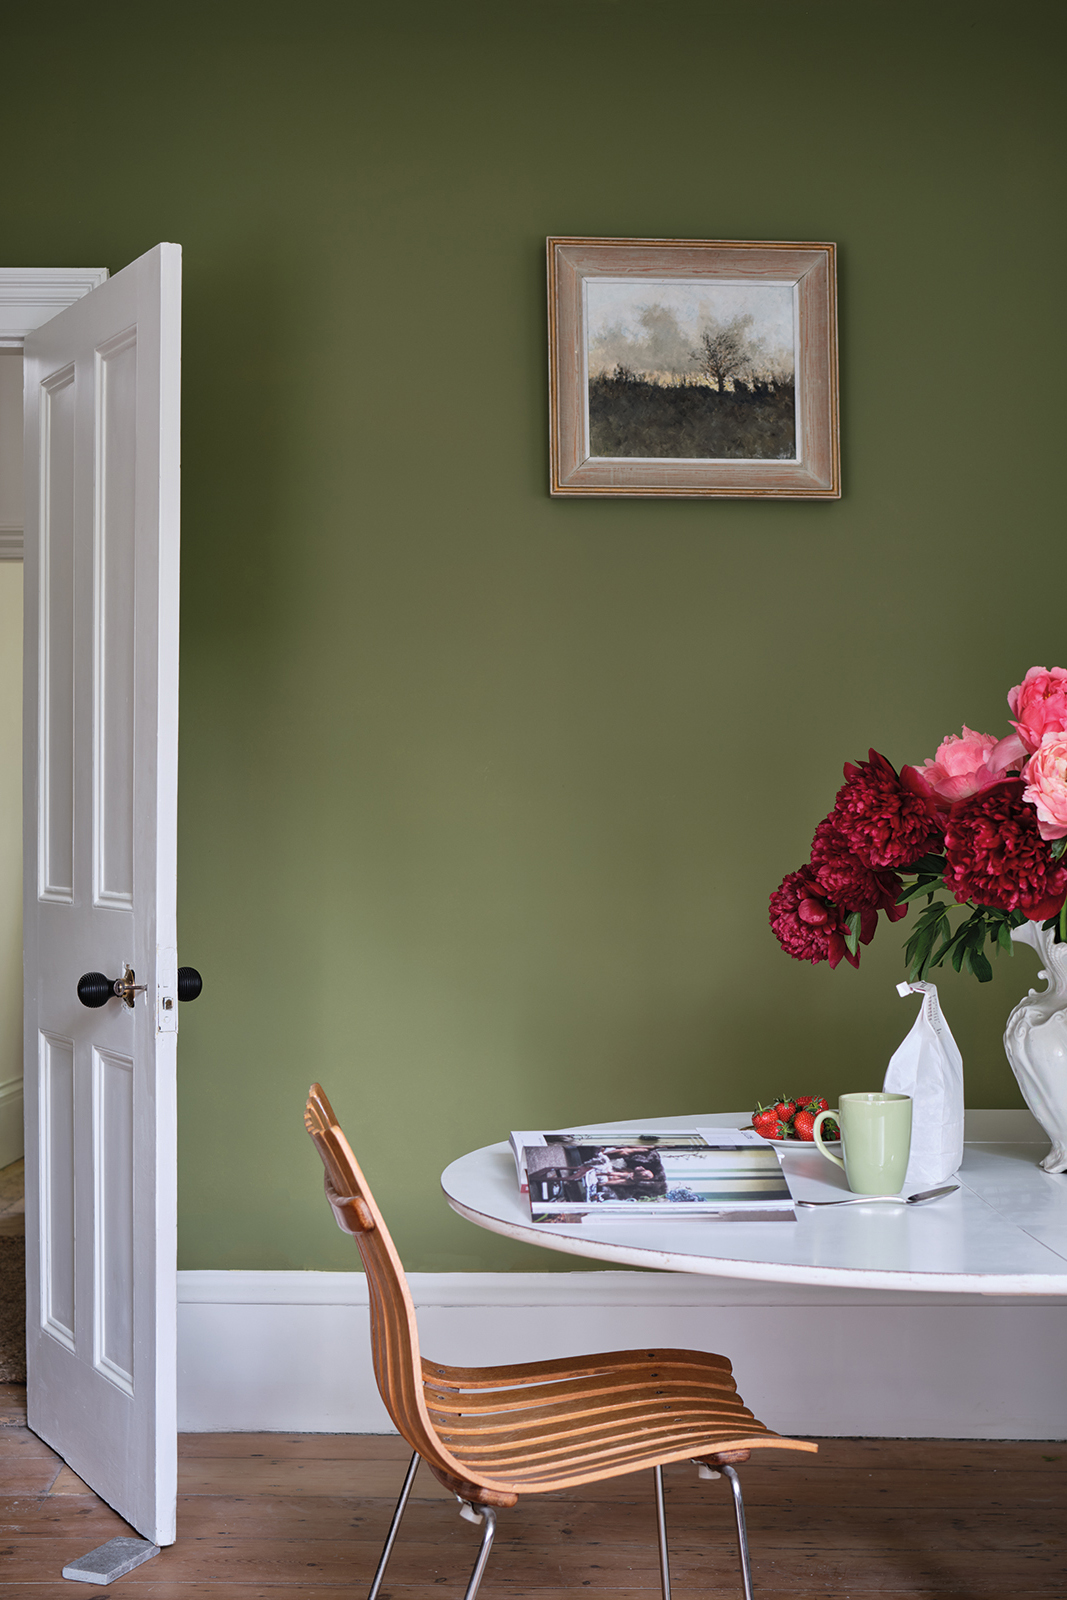 Best Olive Green Paint Colors in Action - Image via Farrow and Ball, feat. 'Sap Green' by Farrow and Ball